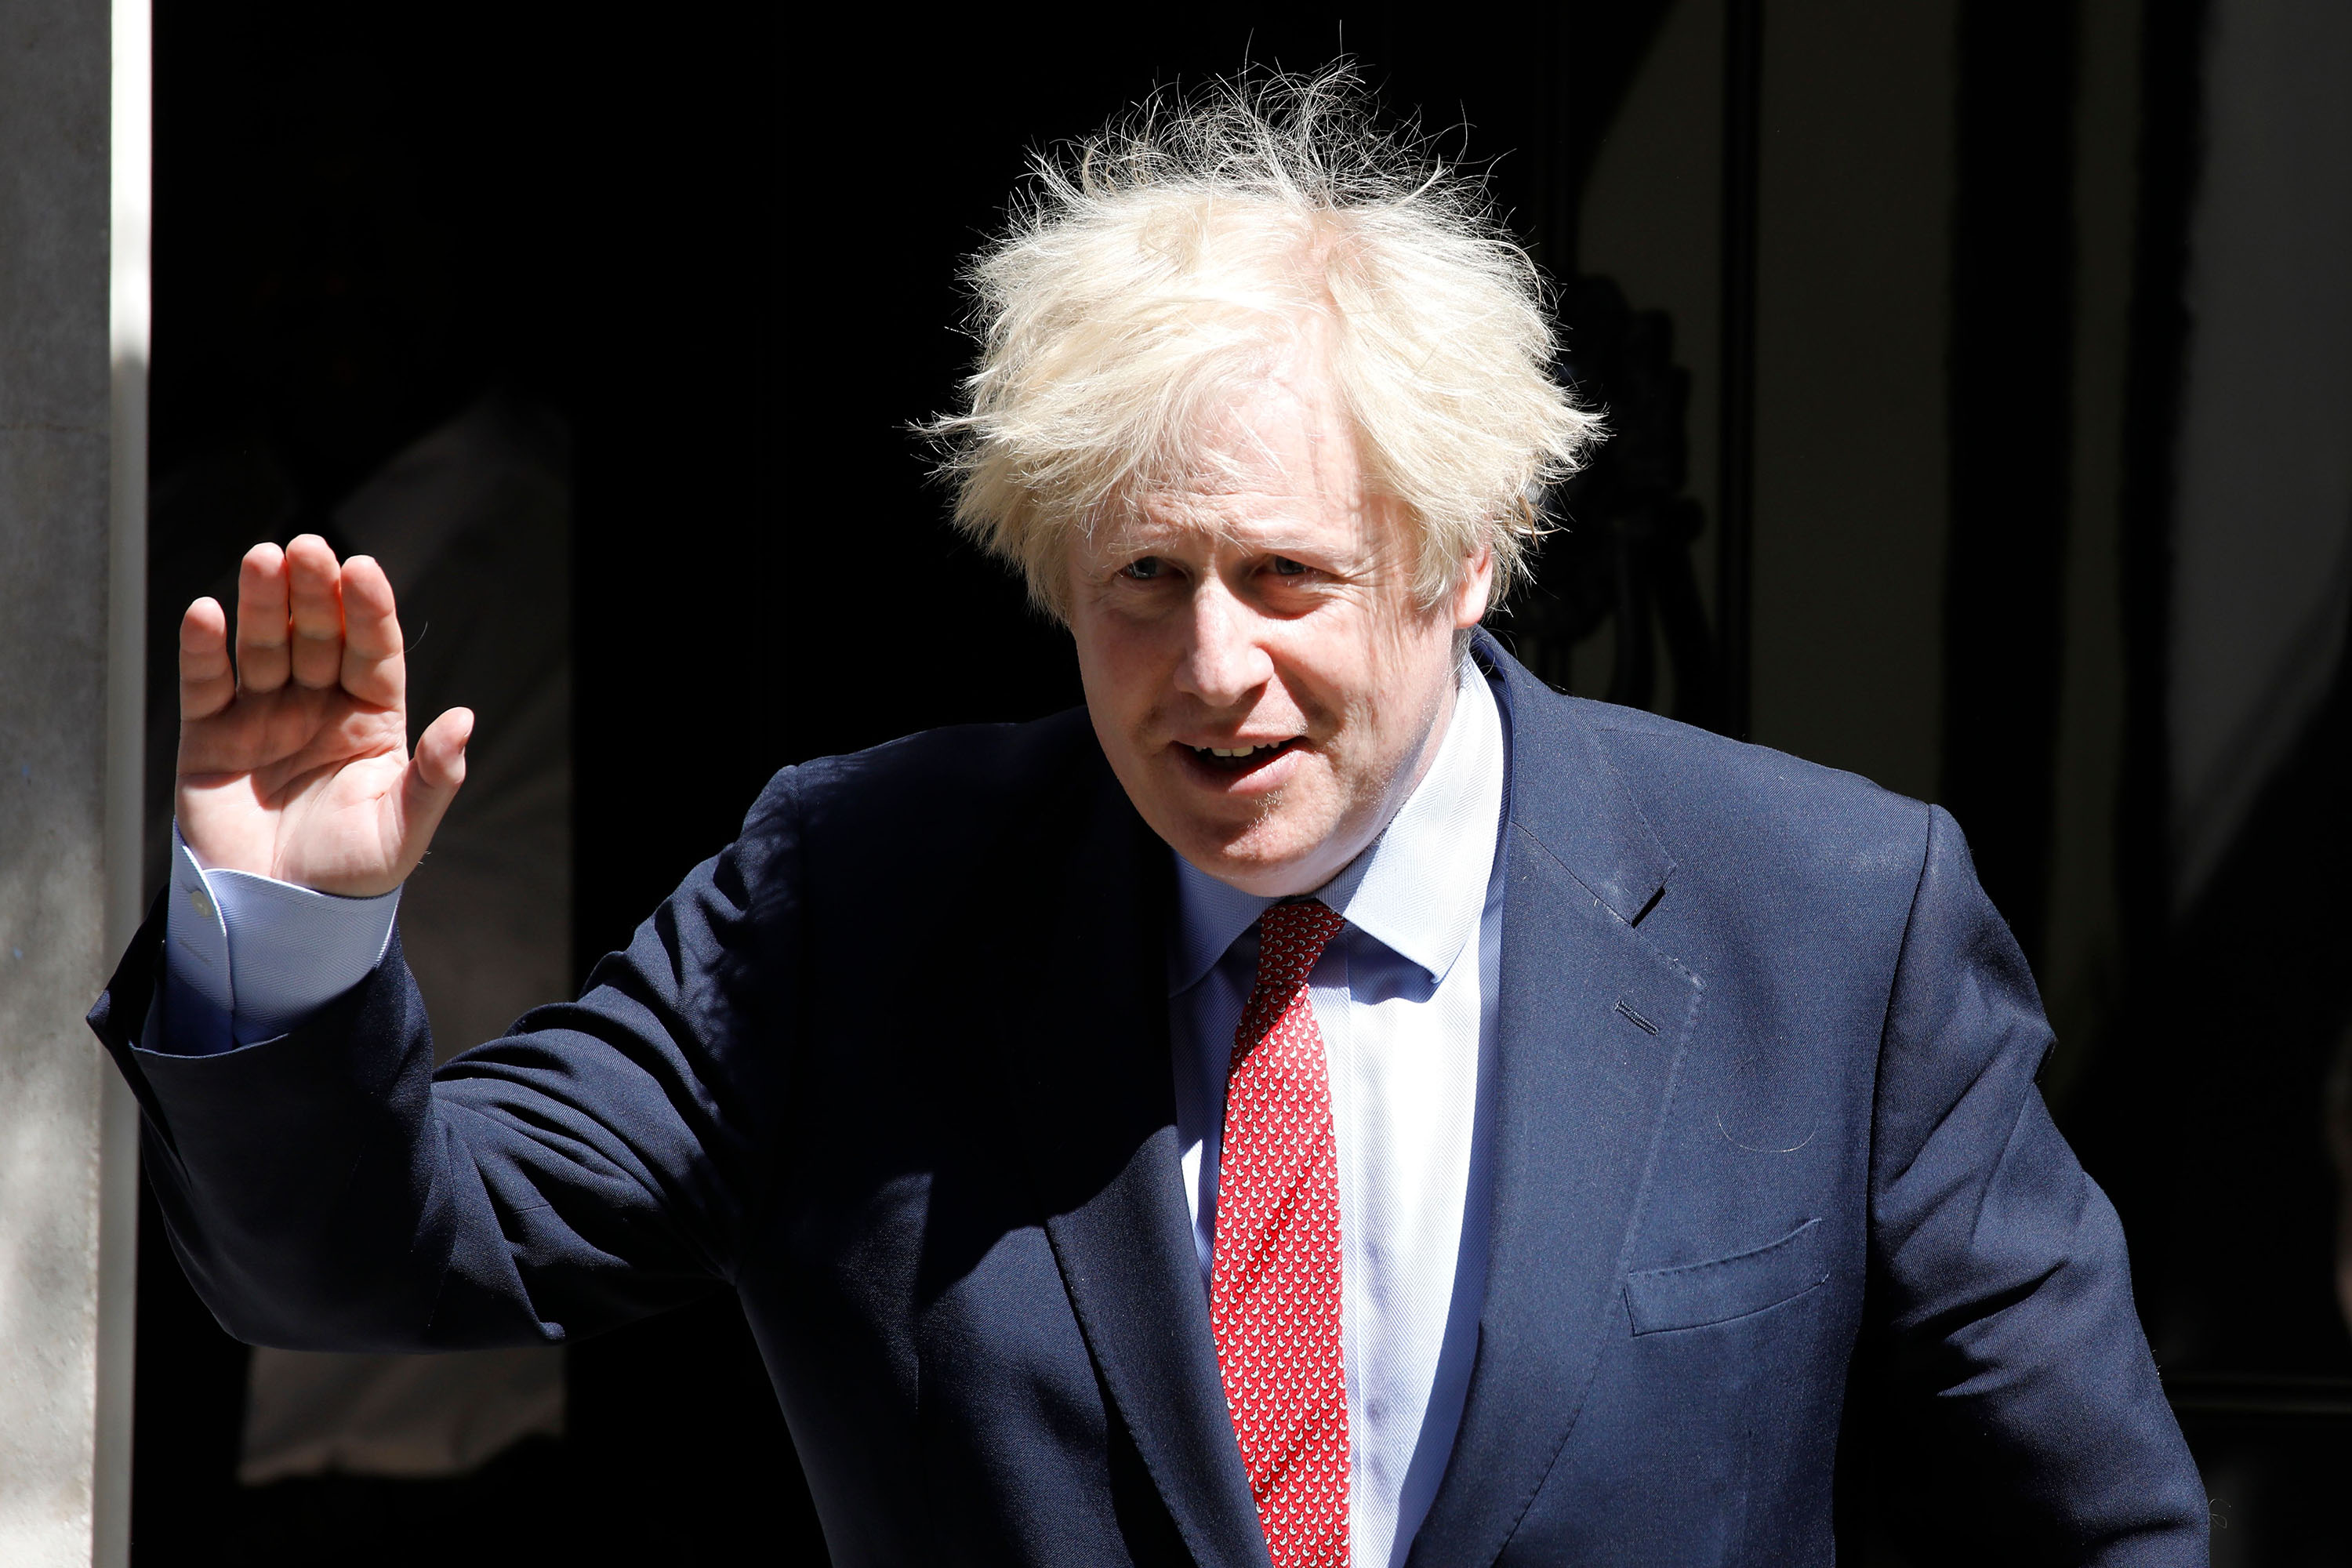 Britain's Prime Minister Boris Johnson leaves 10 Downing Street in London, on Wednesday, May 20.